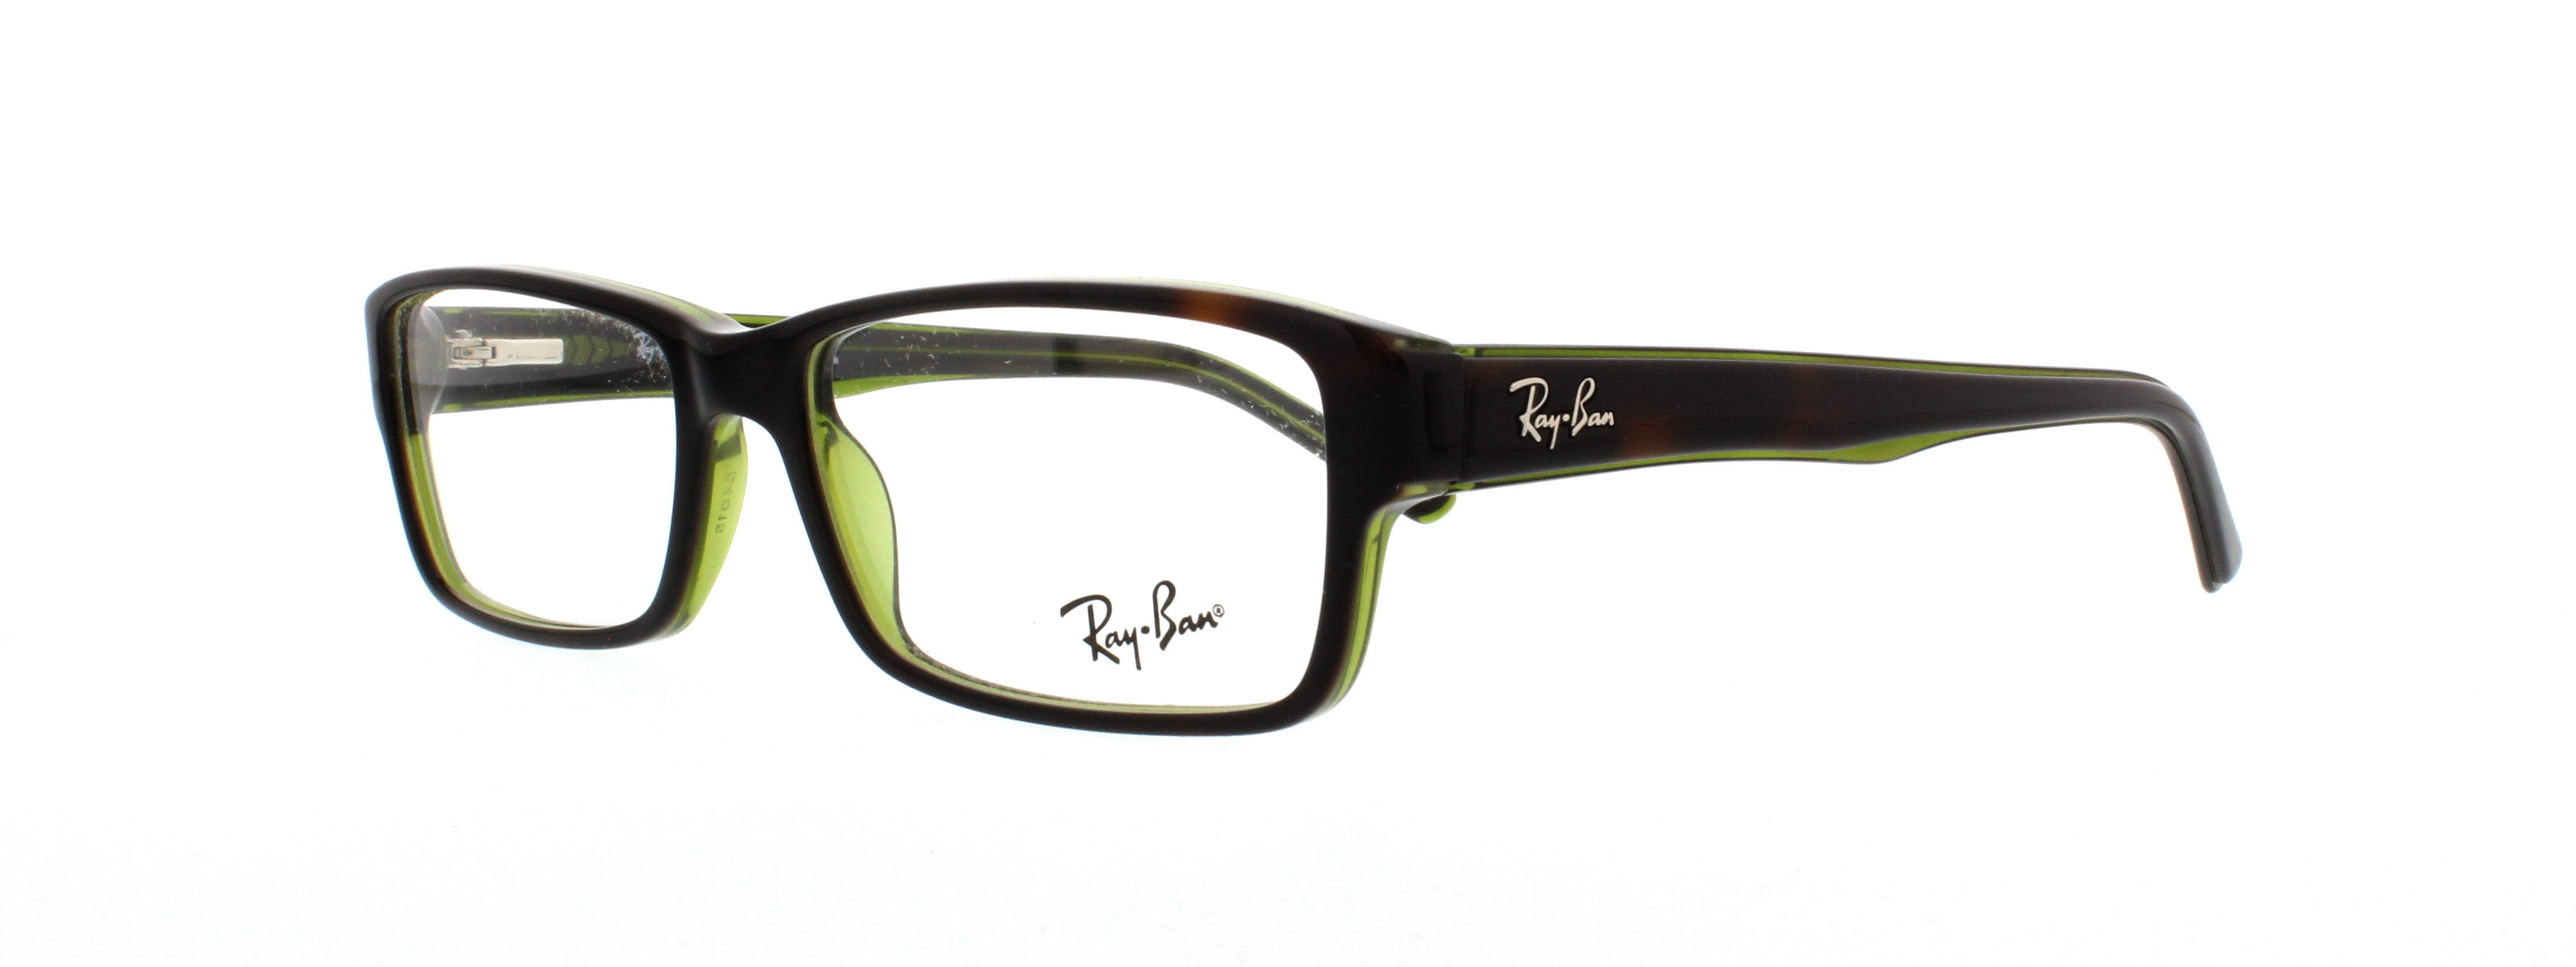 1222d5b346 Buy Ray Ban 5169 « One More Soul